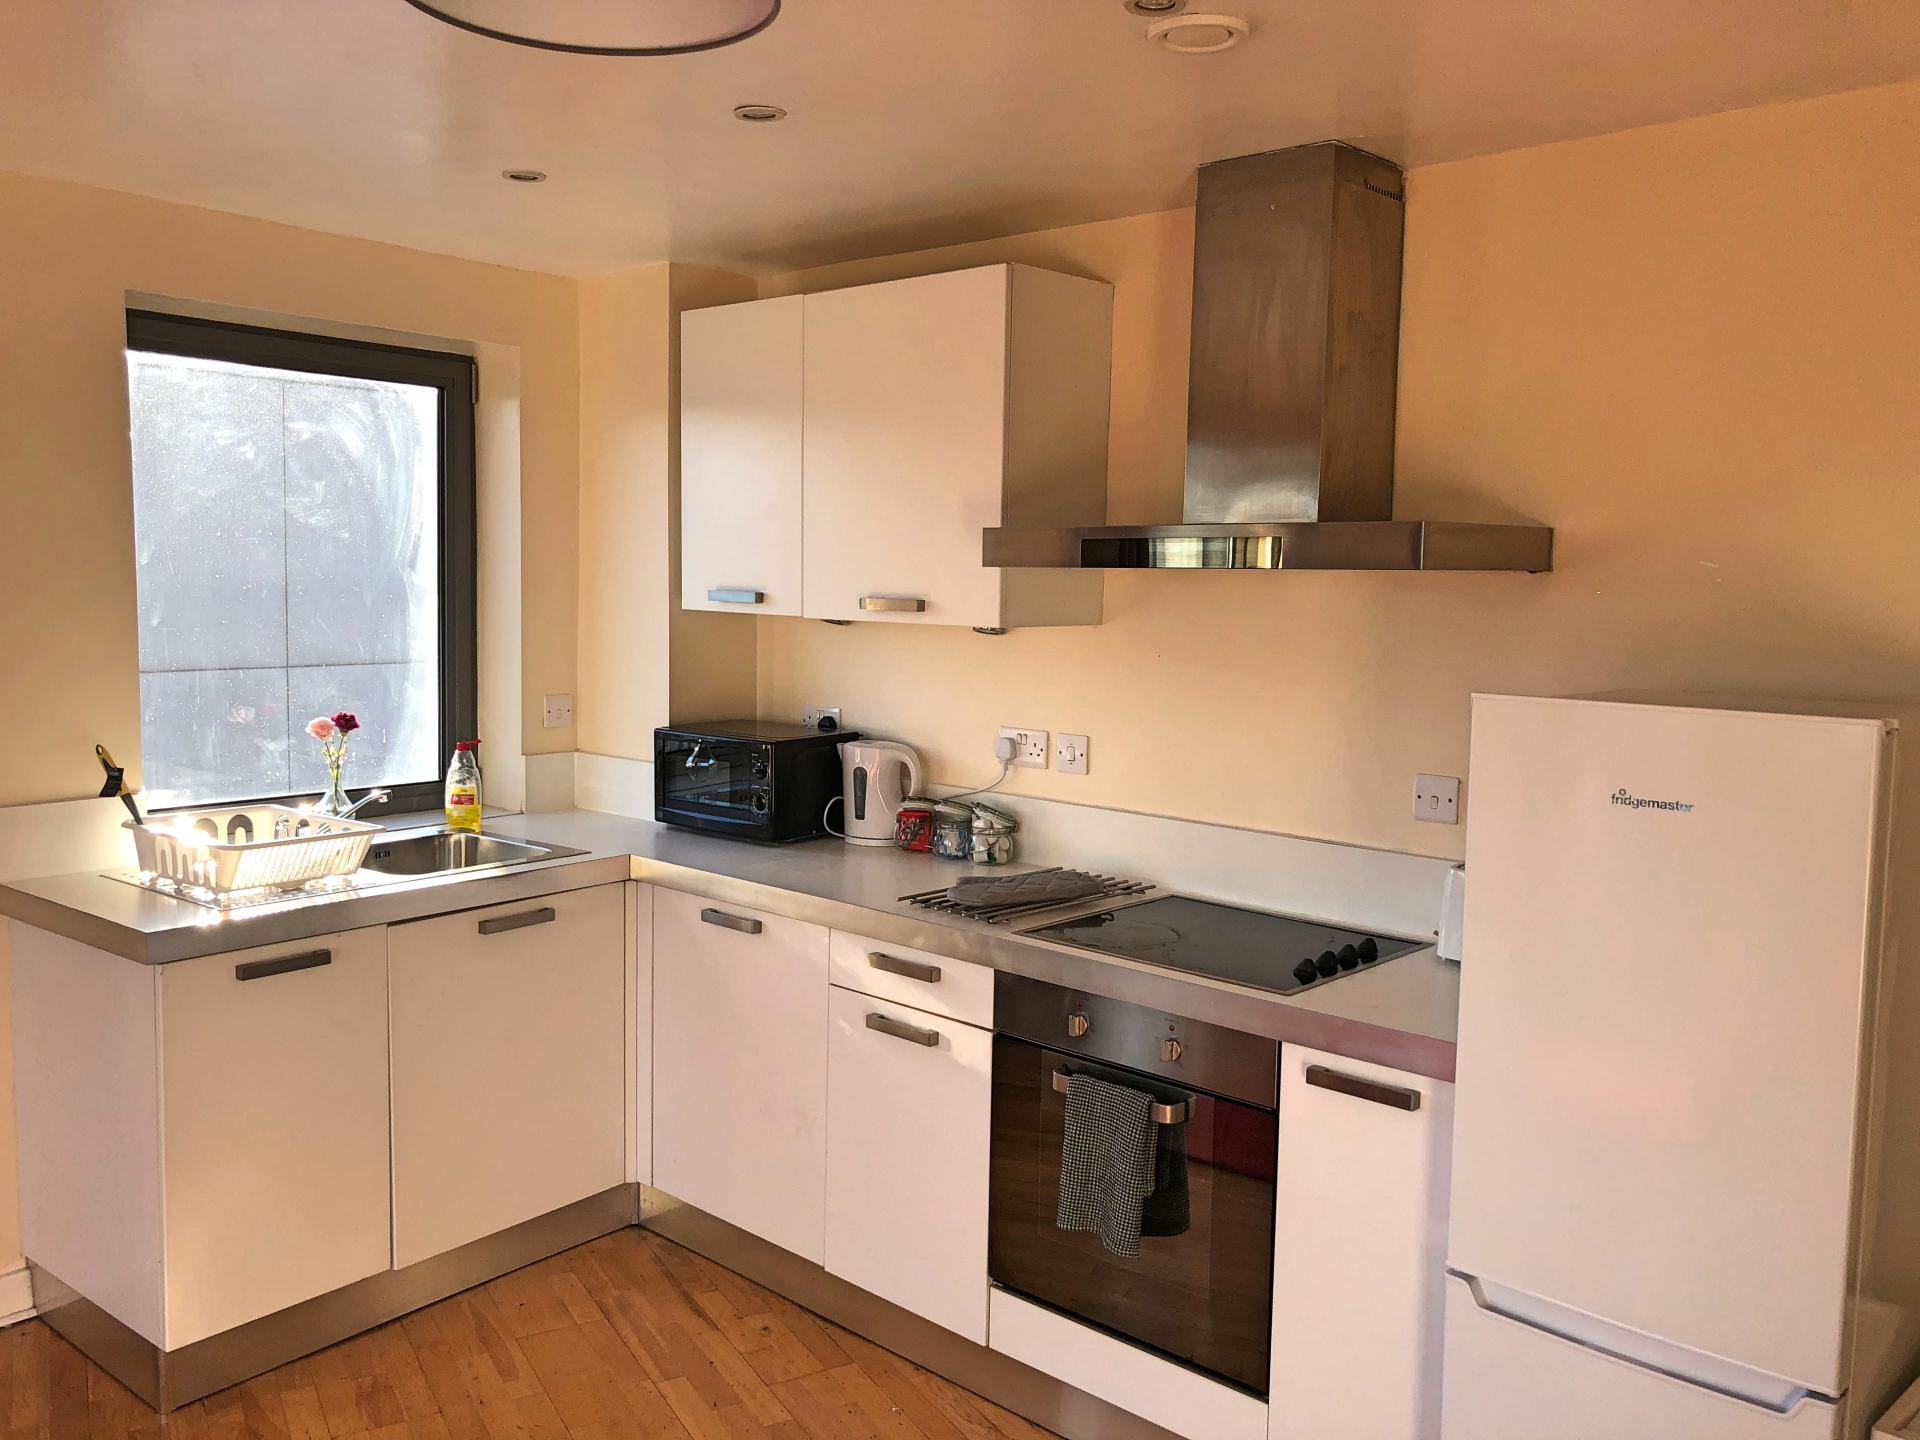 Kitchen facilities at Scotland Street Apartments - Citybase Apartments